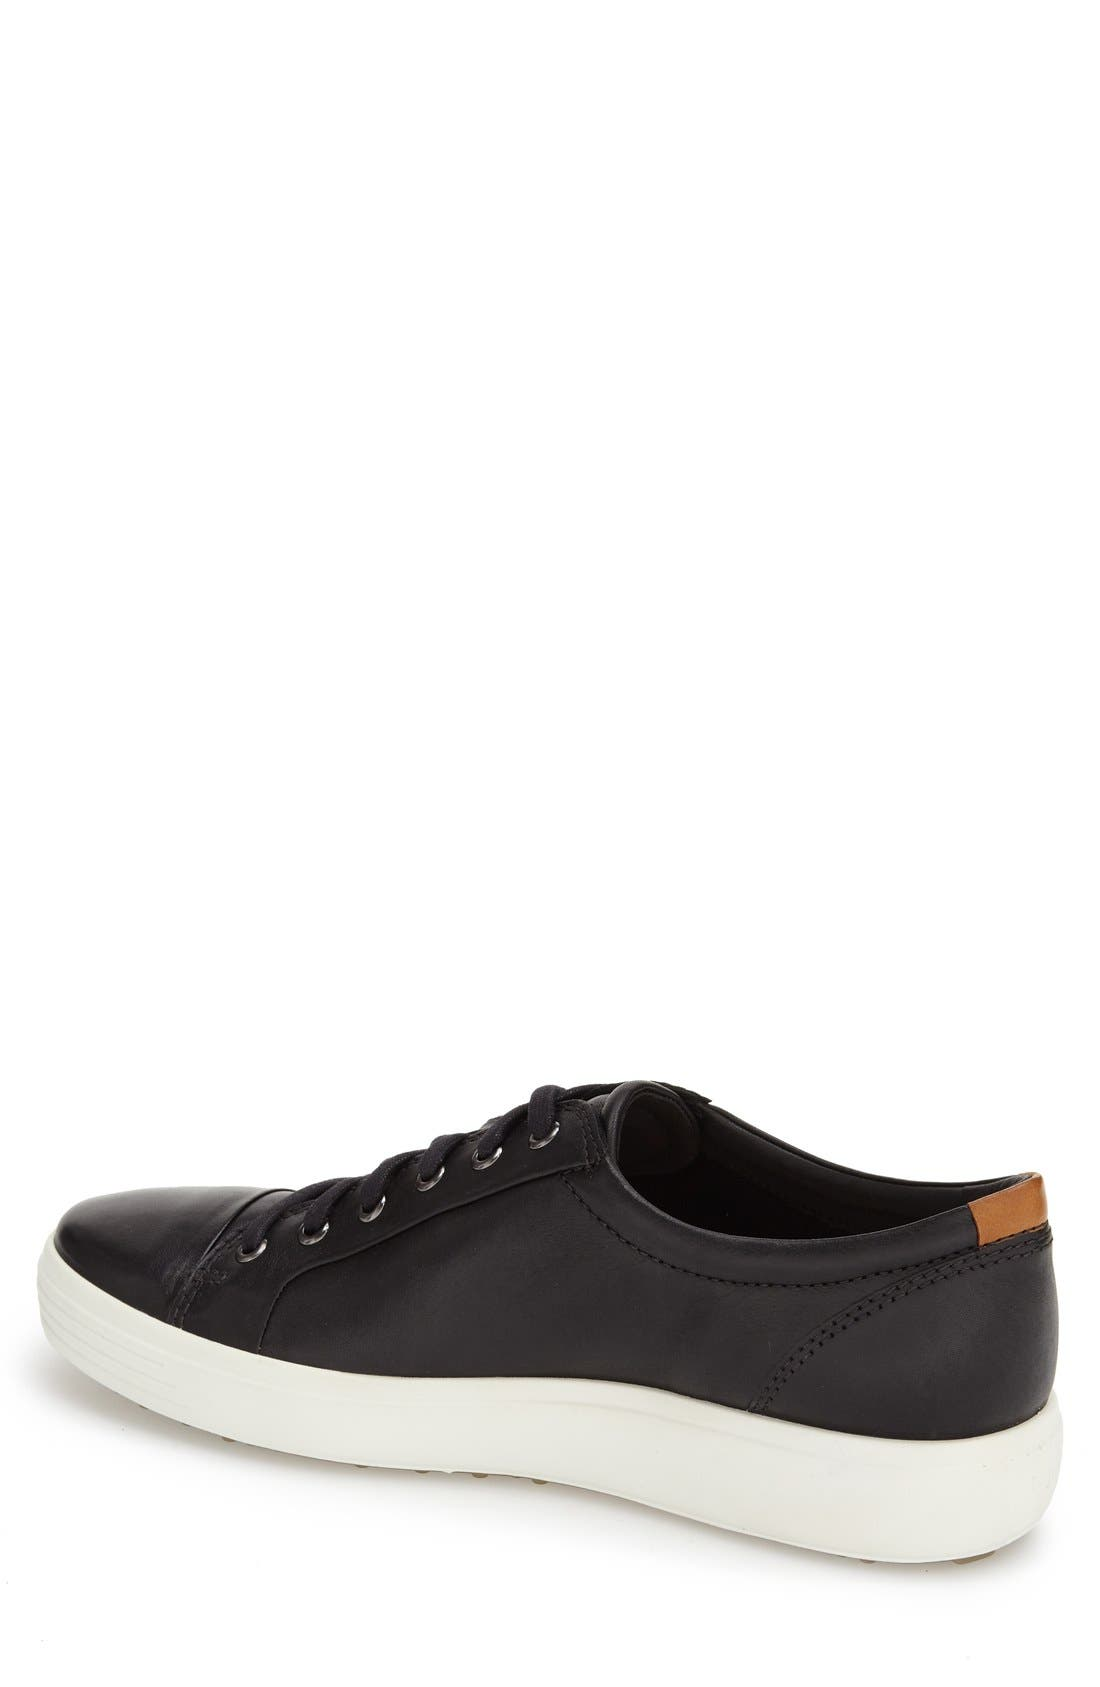 Soft VII Lace-Up Sneaker,                             Alternate thumbnail 31, color,